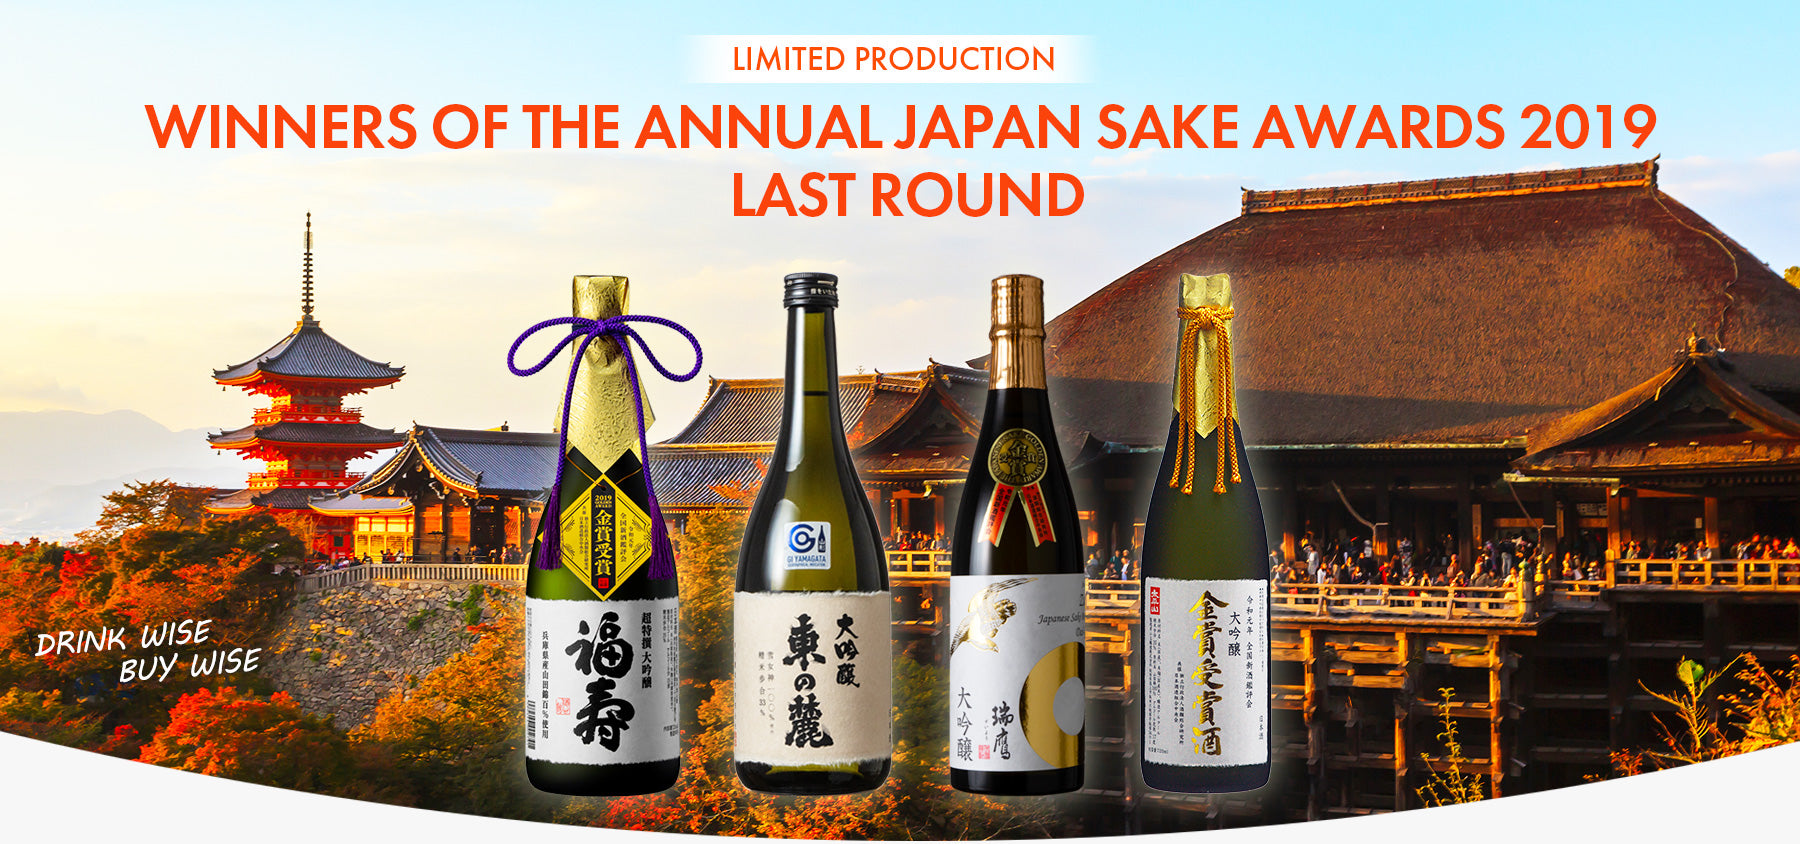 Saketora - LIMITED PRODUCTION WINNERS OF THE ANNUAL JAPAN SAKE AWARDS 2019 LAST ROUND